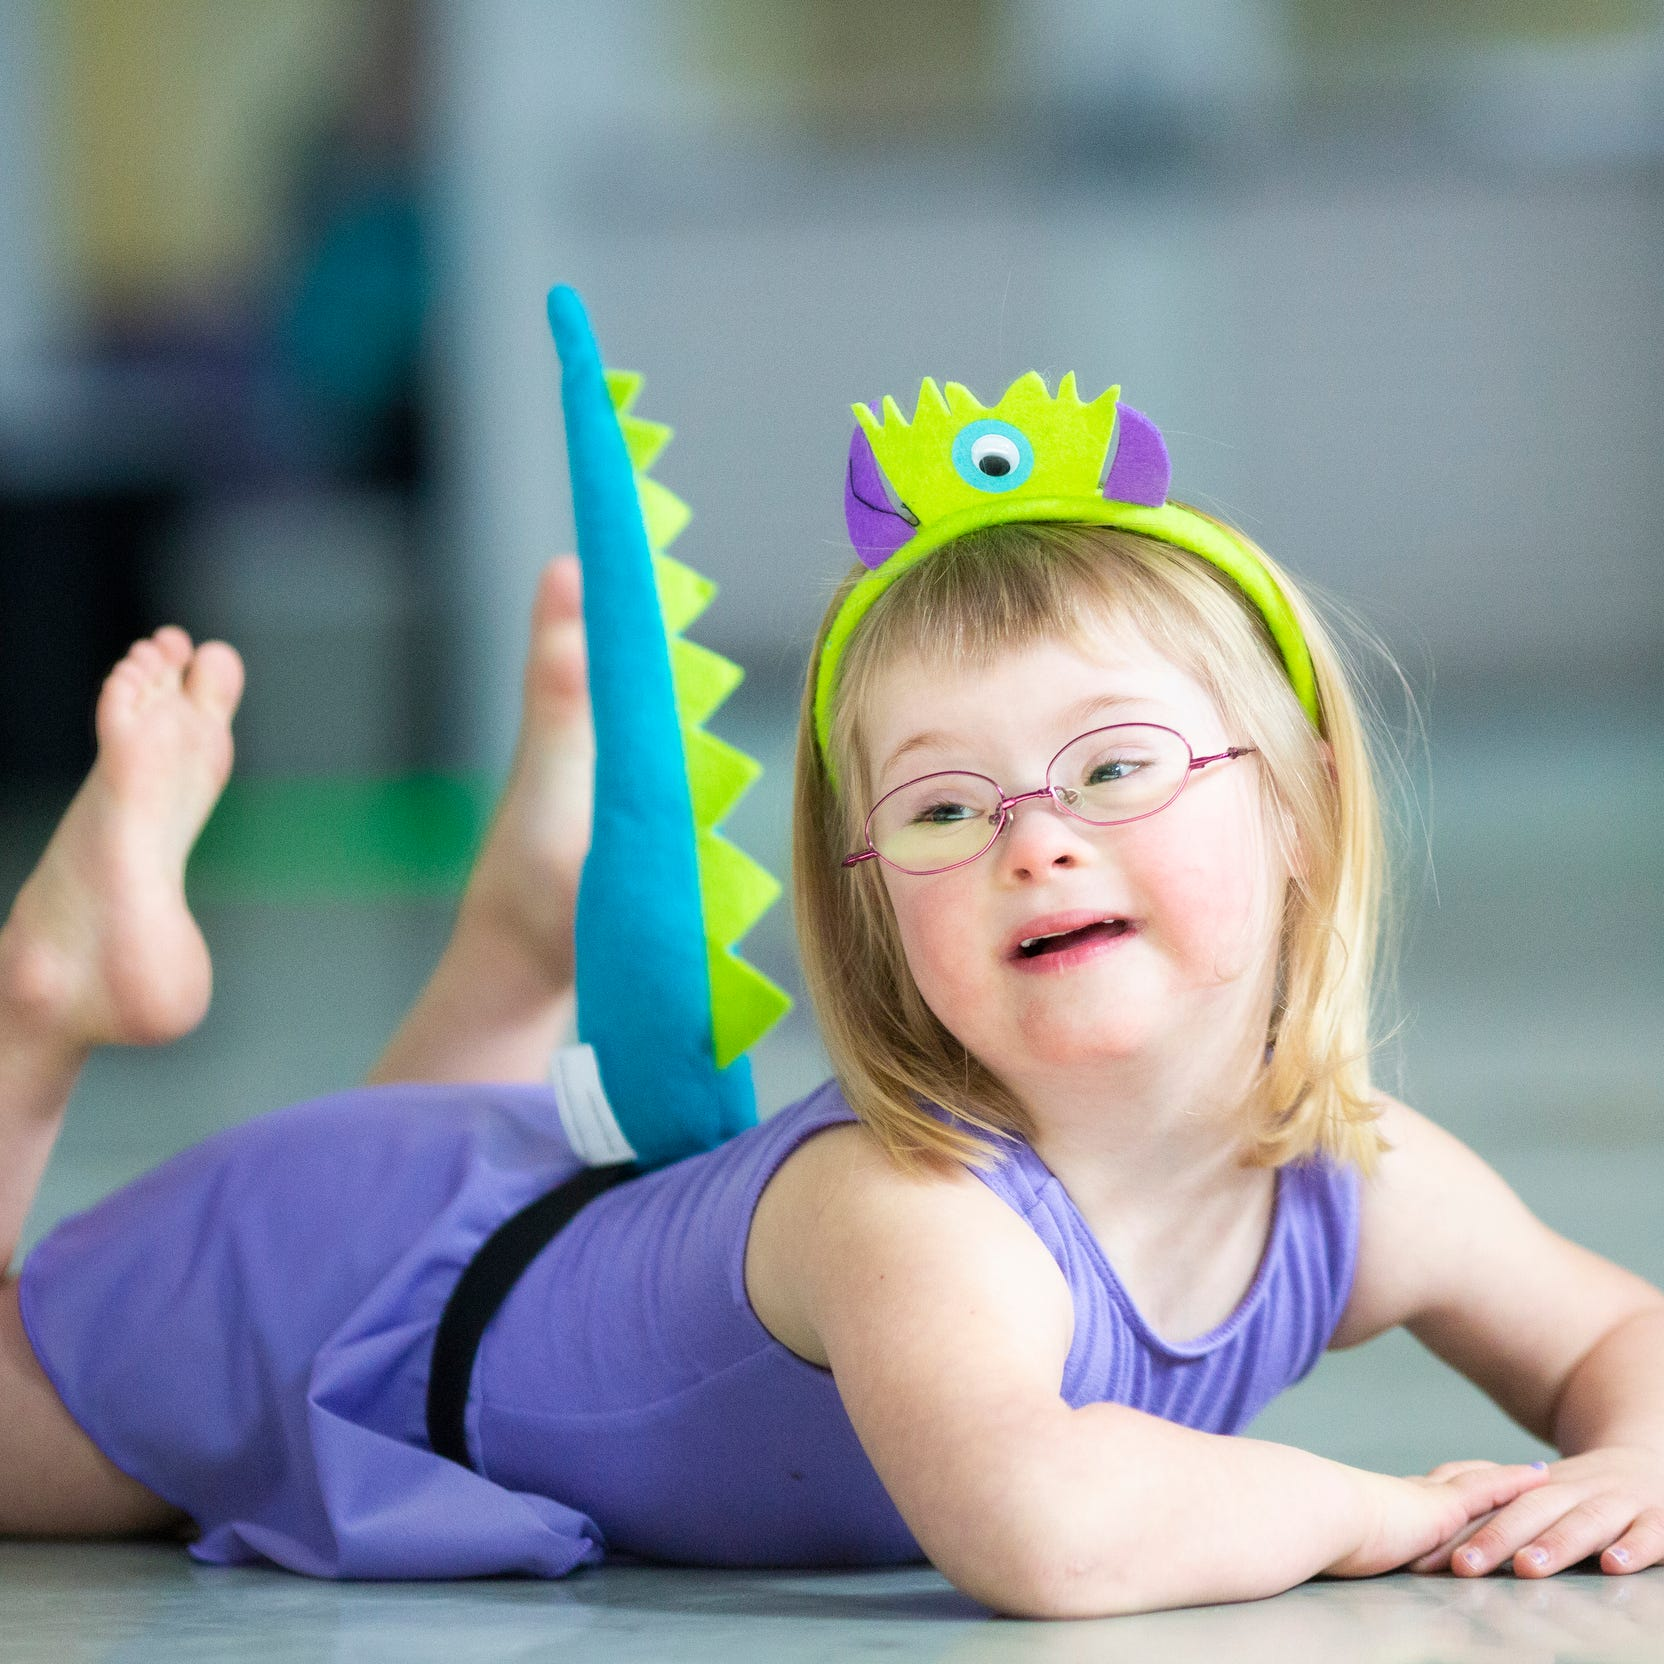 This ballet class is for children with disabilities. But it's really just about dancing